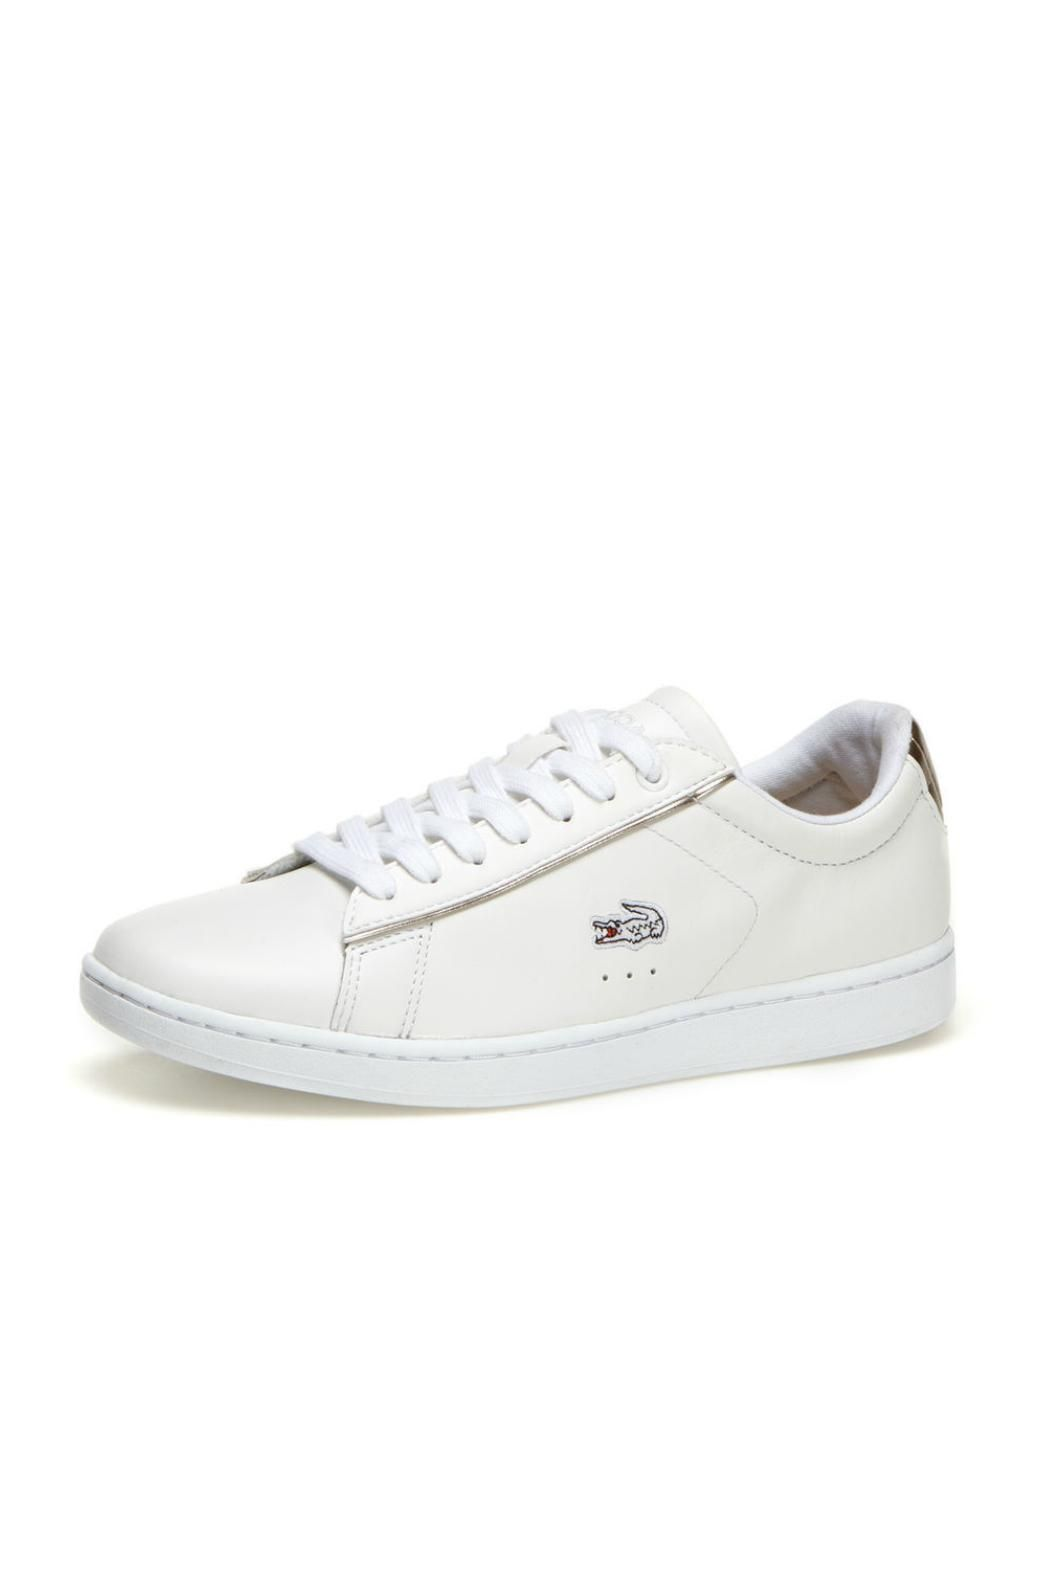 06d1da5b1 Embroidered with small crocodile logo. They are made with premium leather  and have a thick rubber sole. Carnaby Sneaker by Lacoste Footwear.